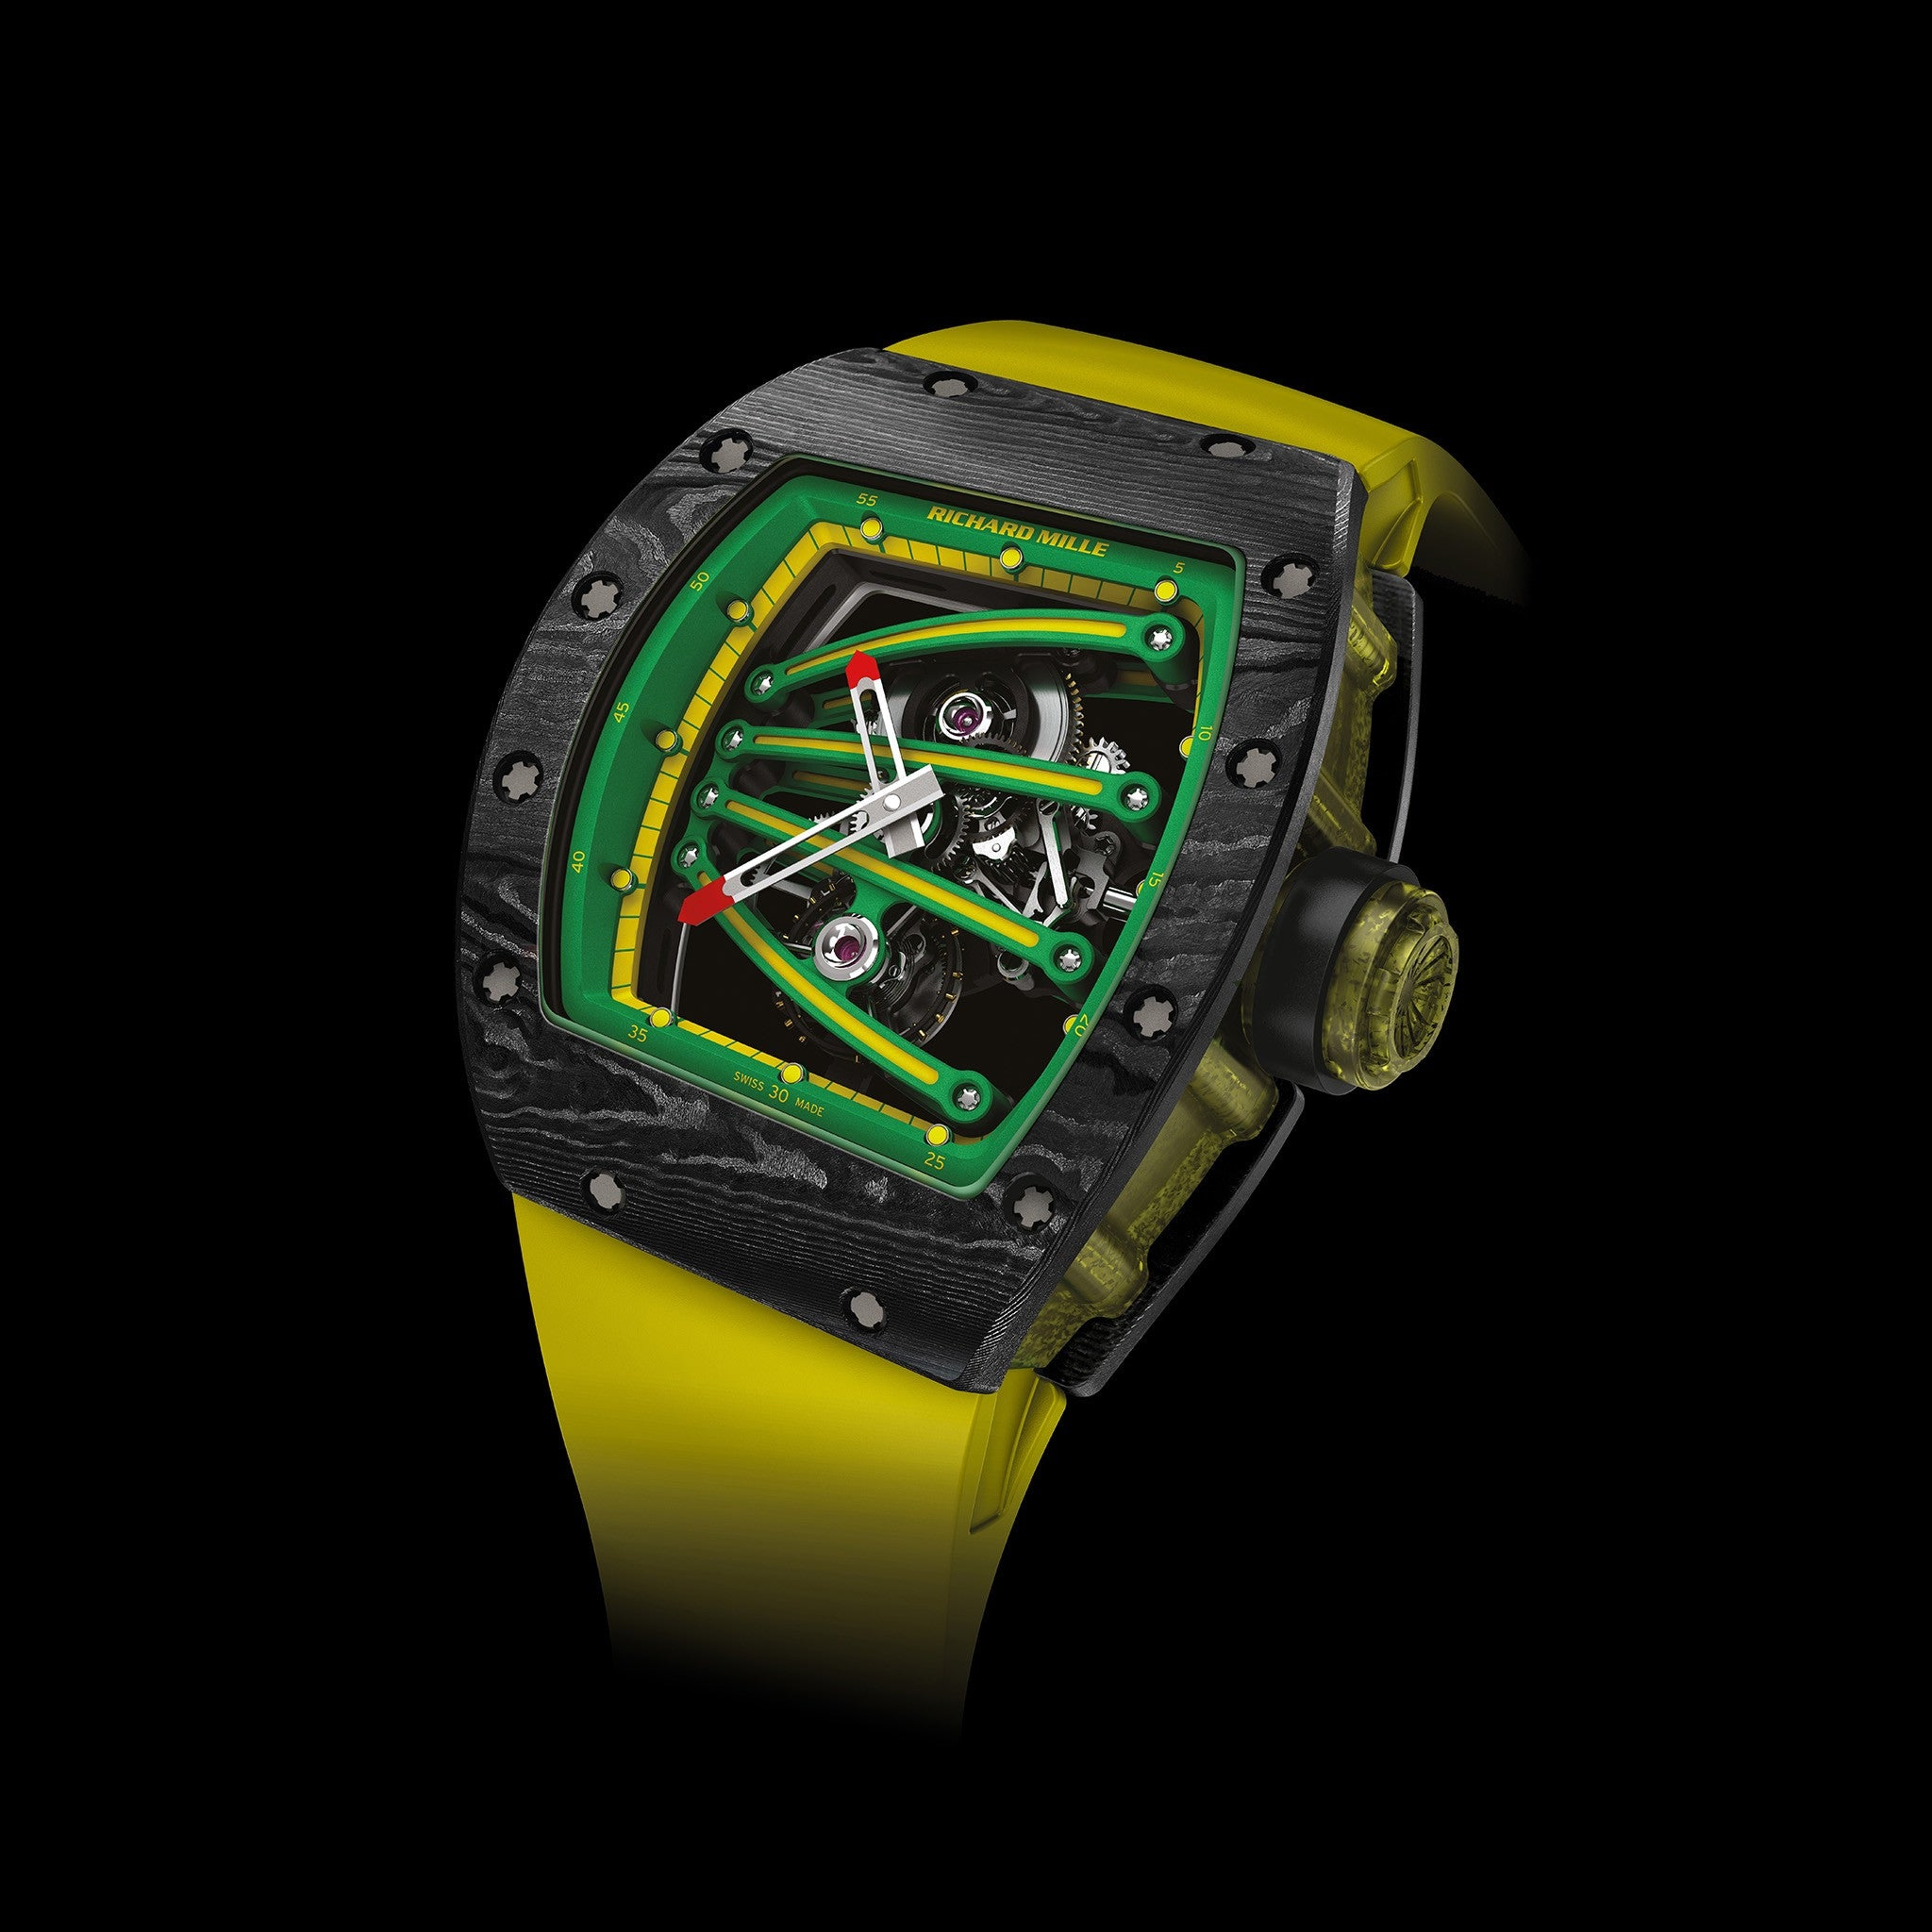 RM 59-01 Yohan Blake limited Edition - Richard Mille